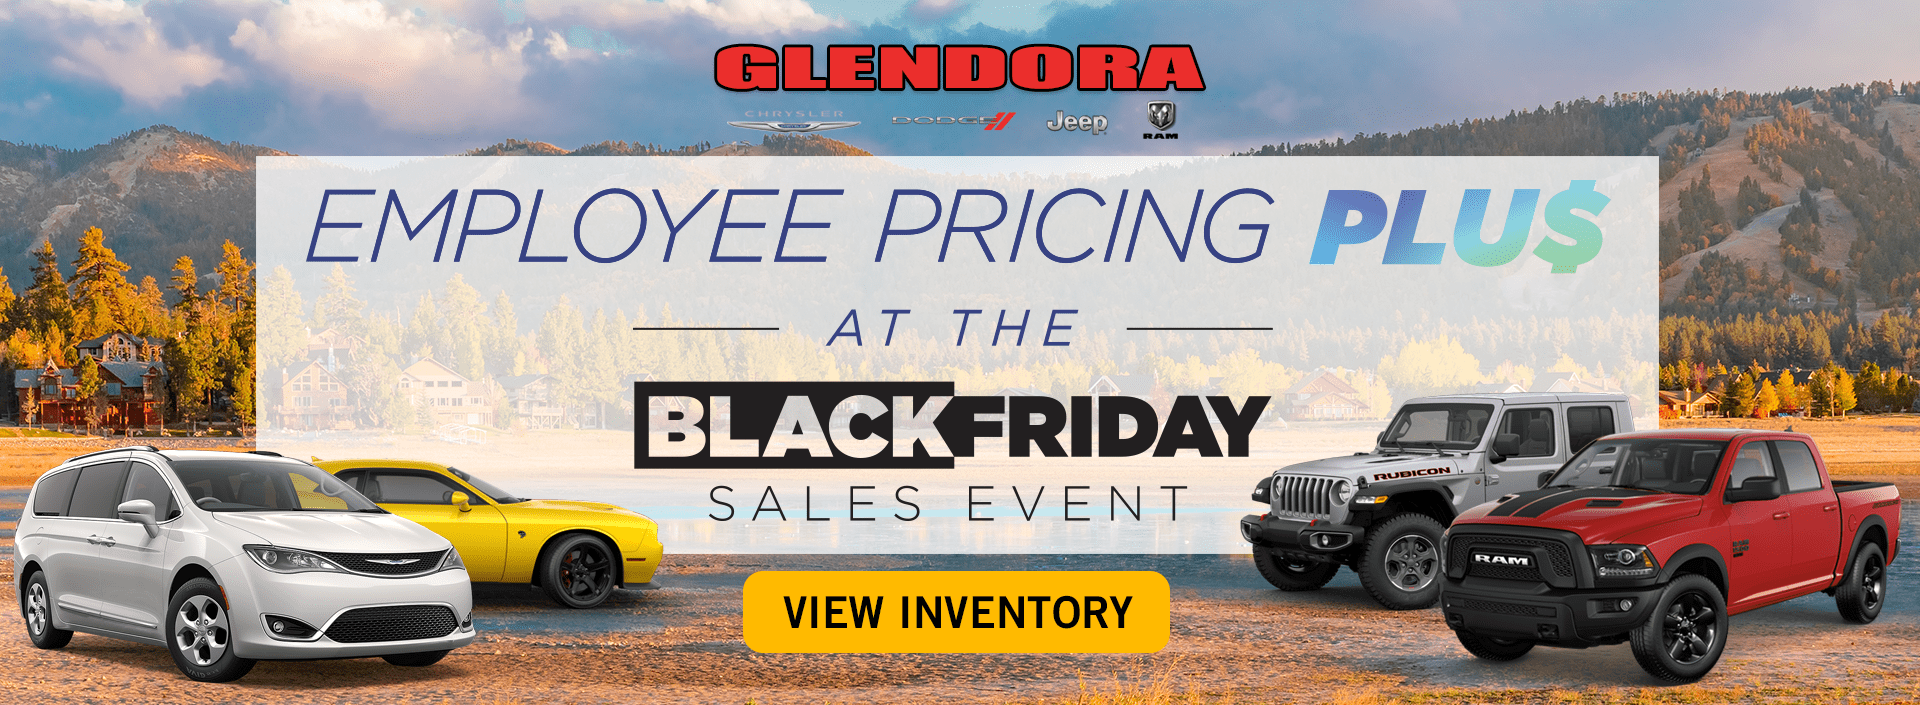 Black Friday - Employee Pricing Deals